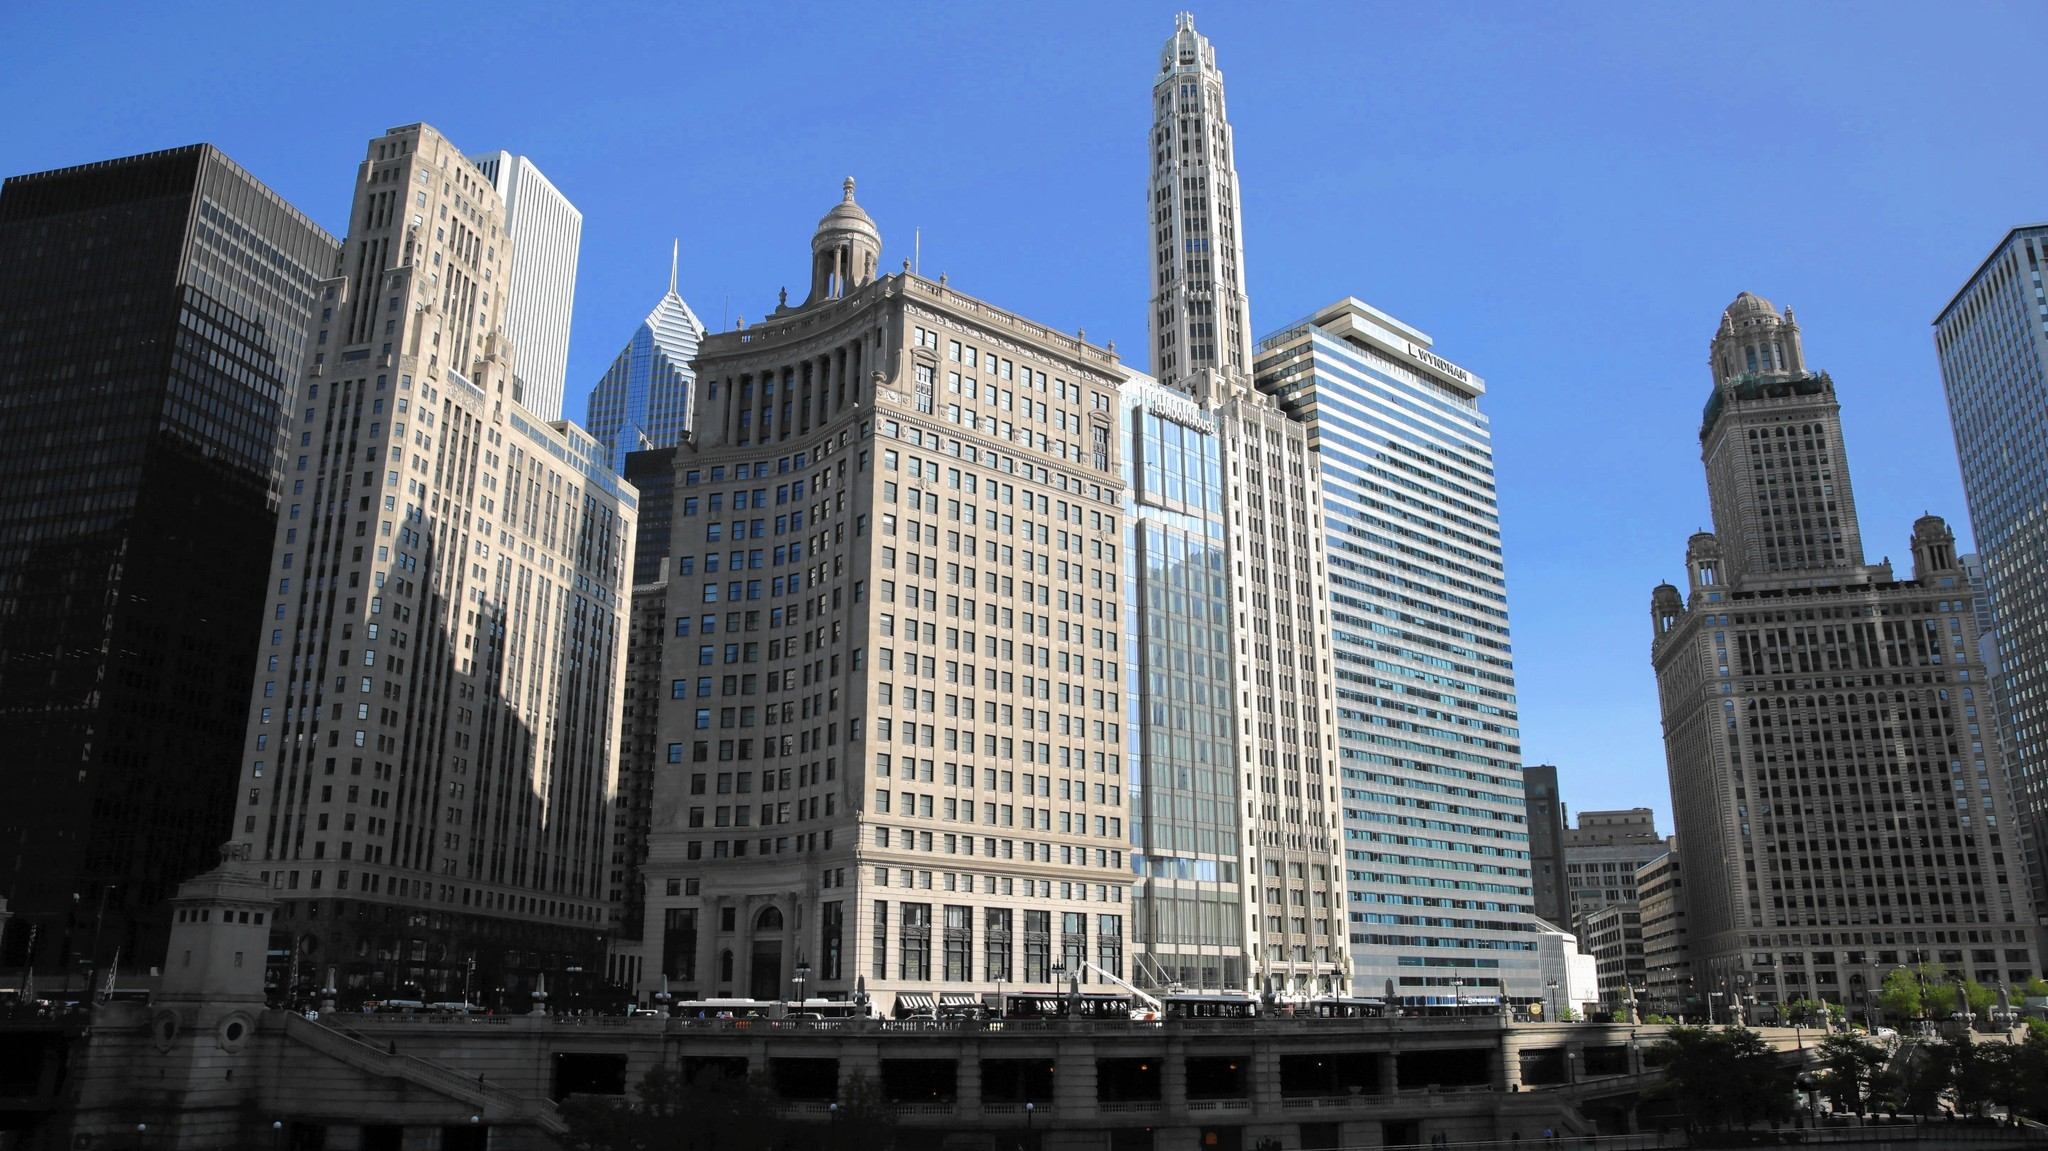 Michigan Avenue classic comes back to life with a 21st century twist    Chicago Tribune. Michigan Avenue classic comes back to life with a 21st century